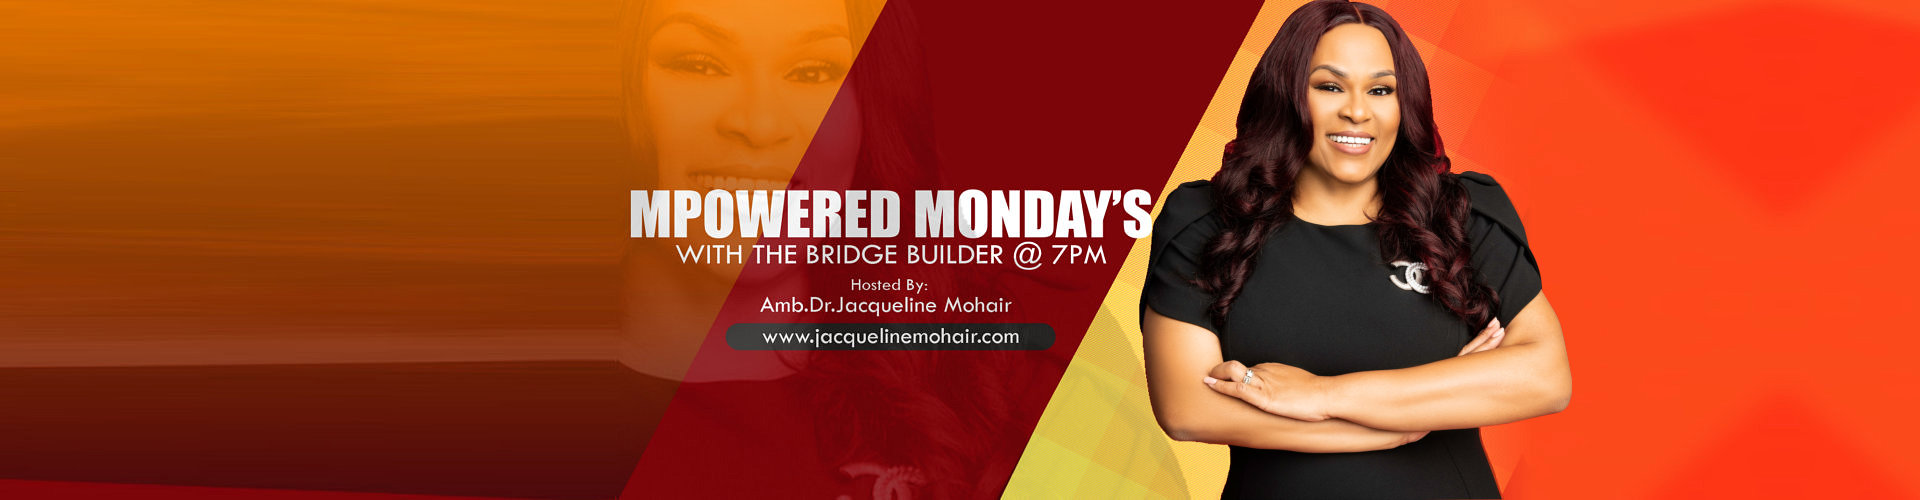 mpowered monday's with the bridge builder